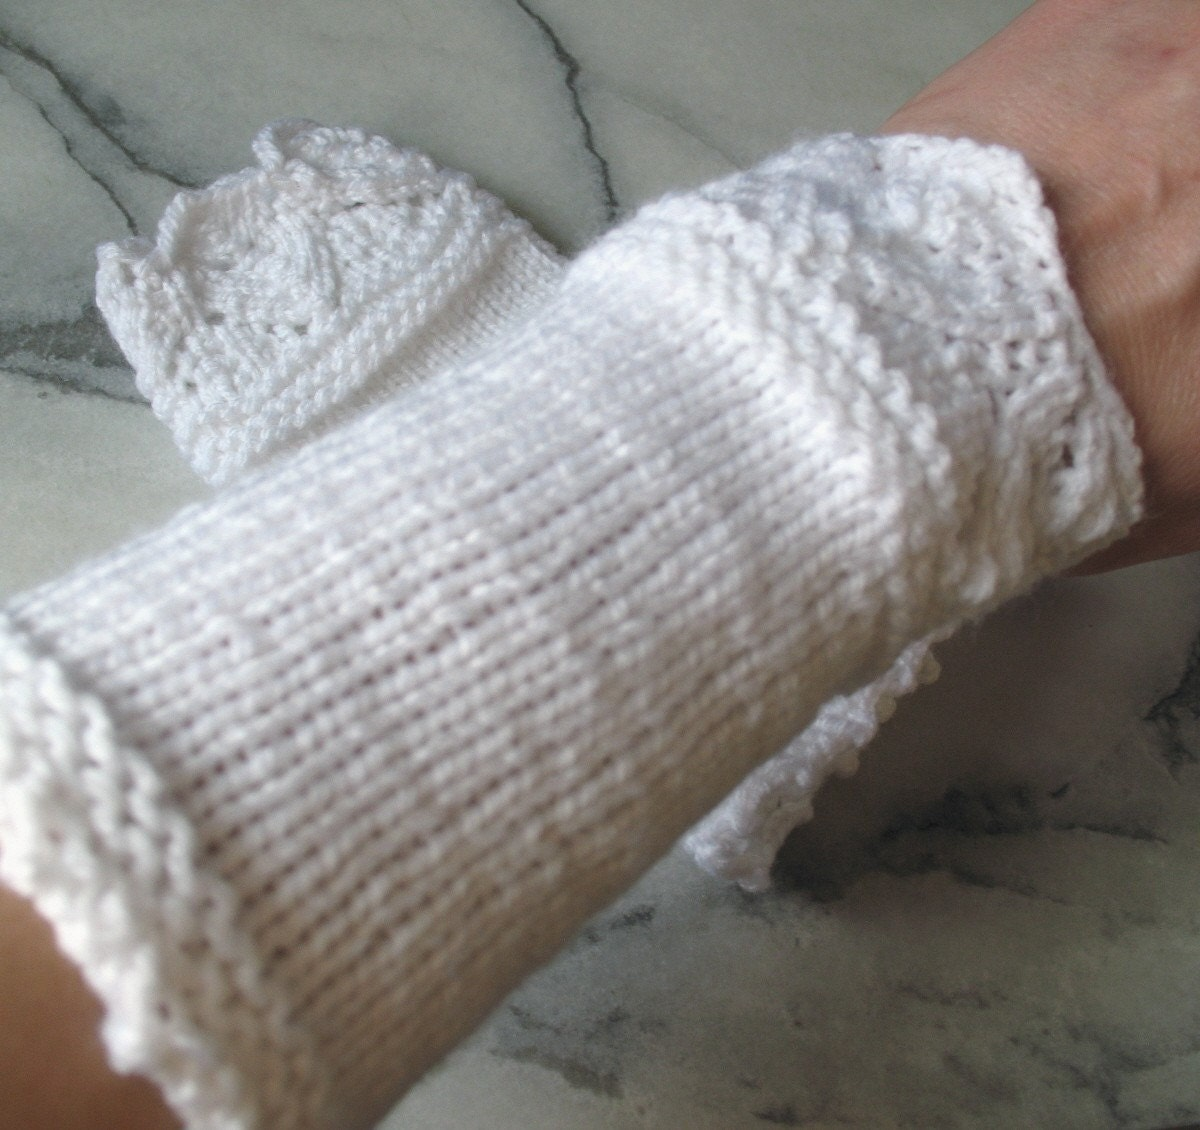 Lace Wristlets Knitting Pattern : Hand Knit White Lace Cuffs/Wristlets